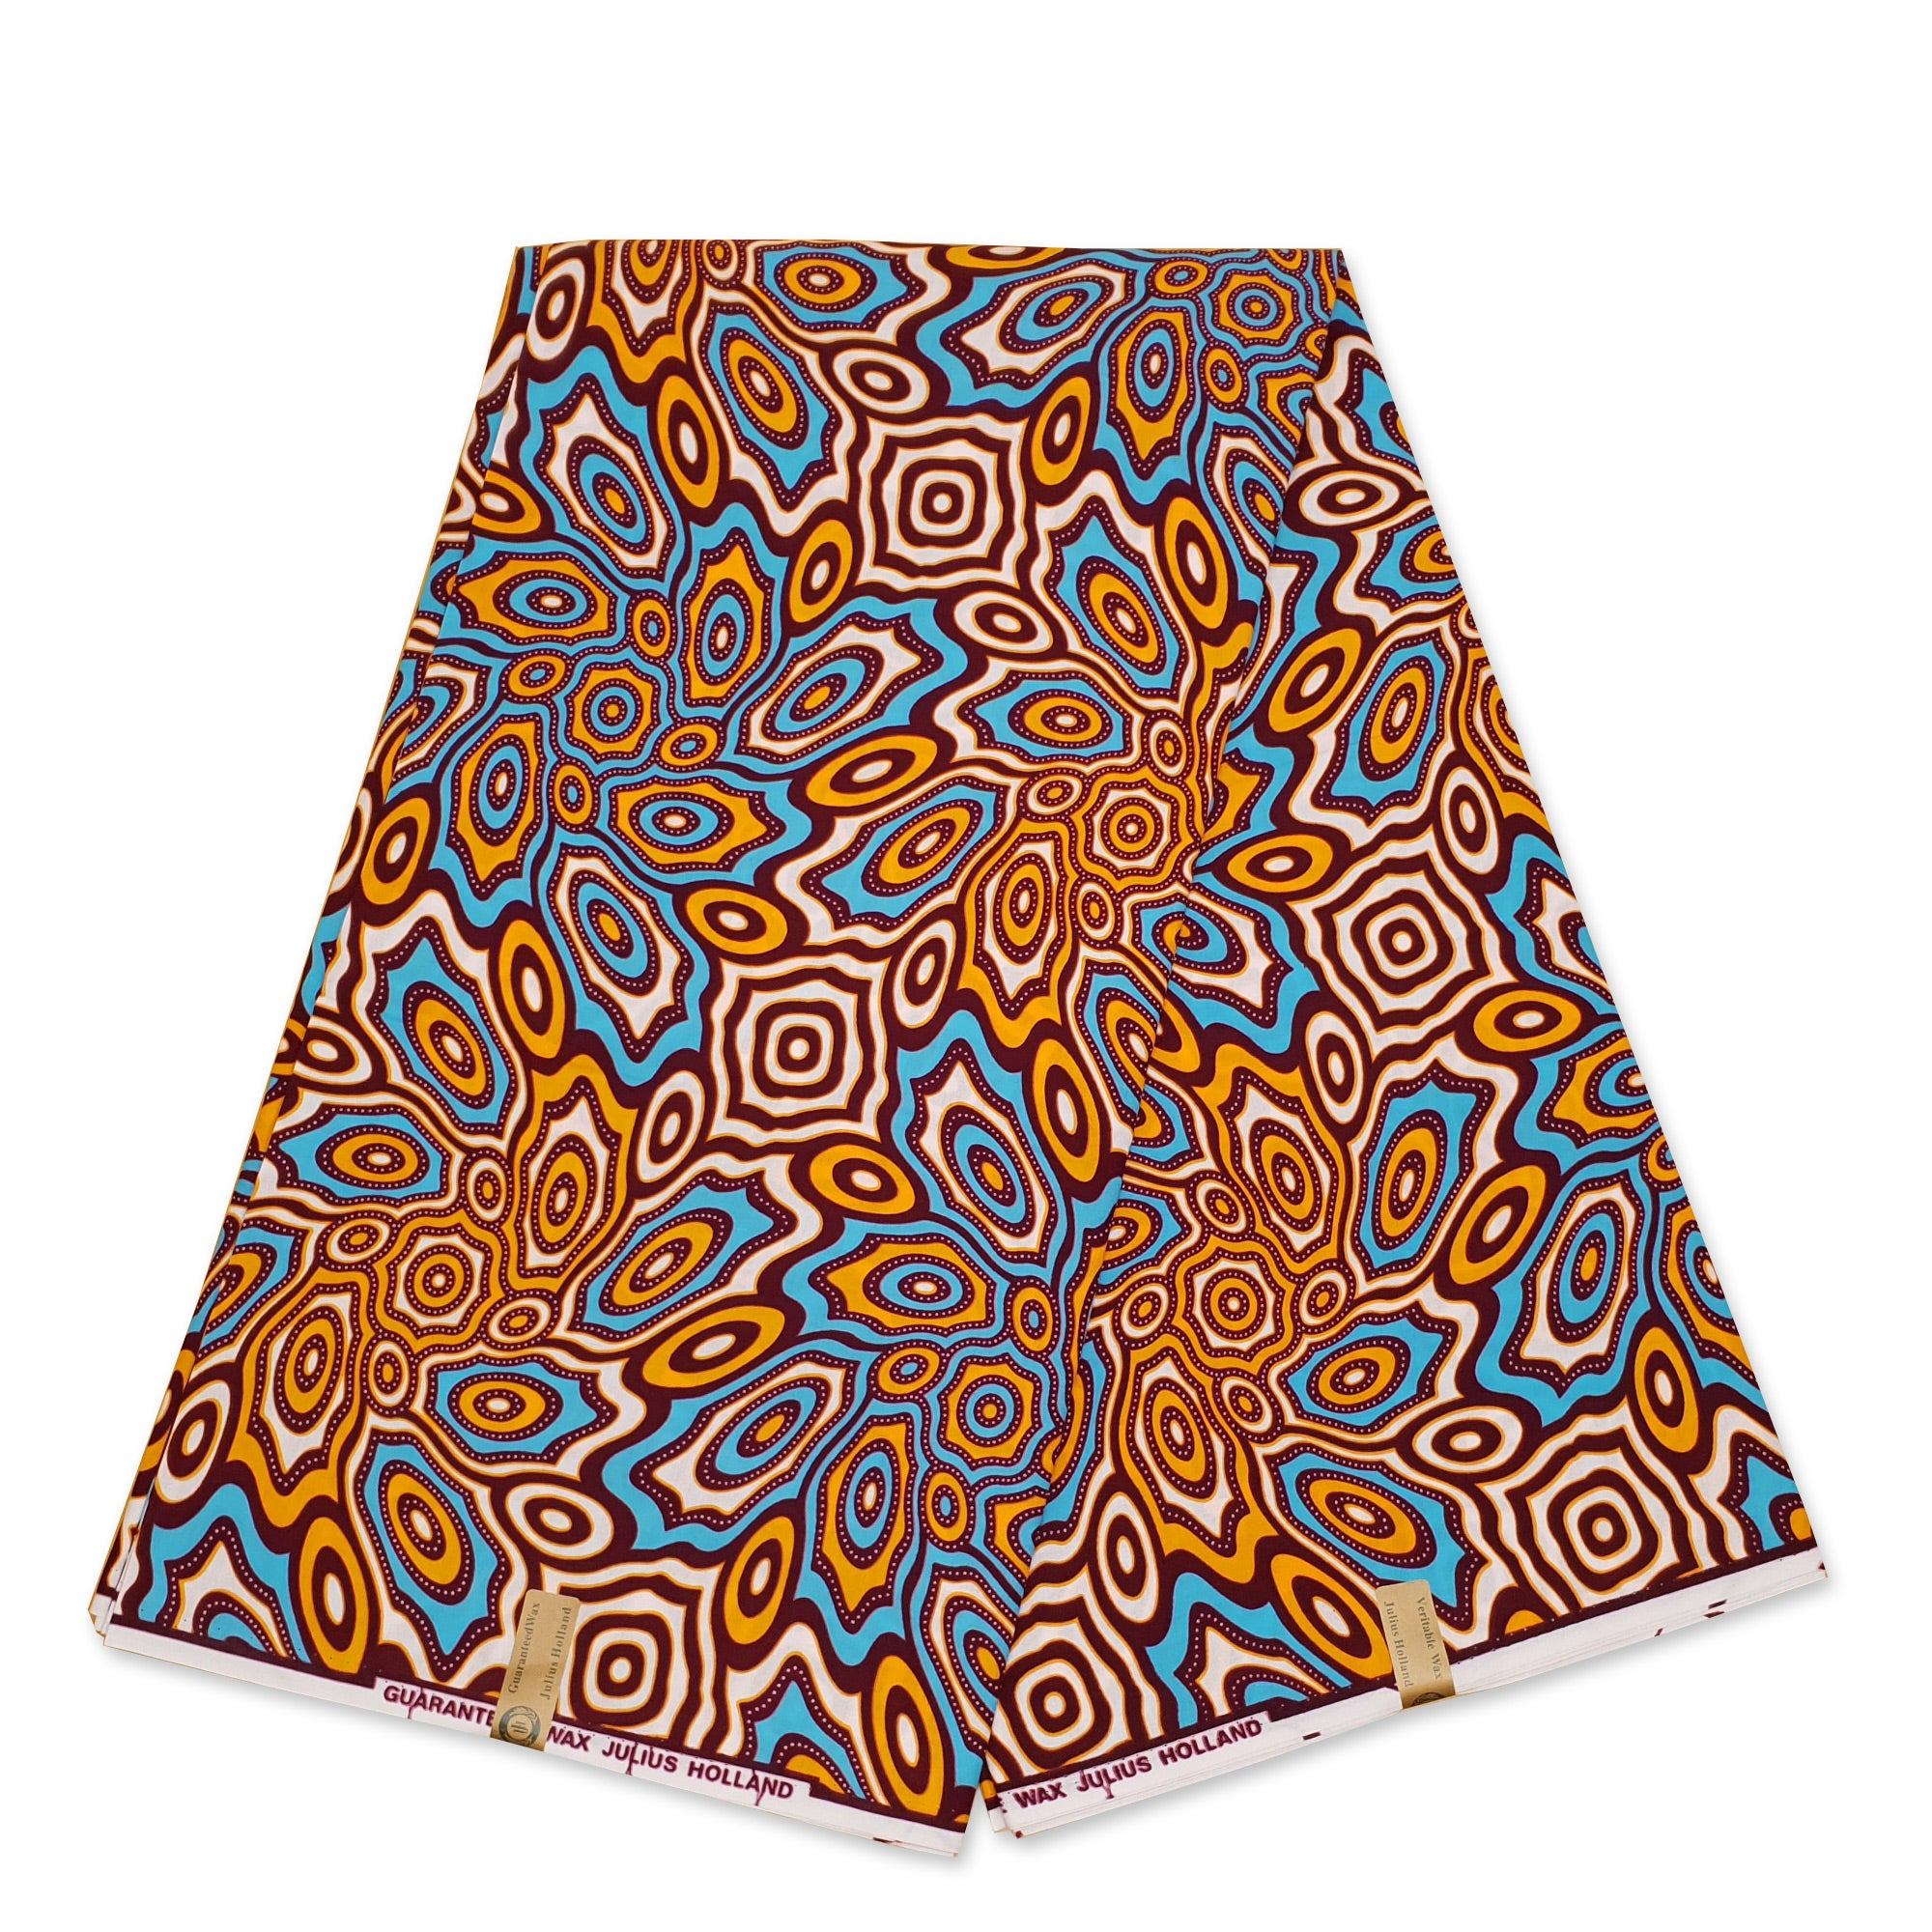 African Wax print fabric - Gold / Blue Heraldic - gold embellished - Brillant Platinum Edition